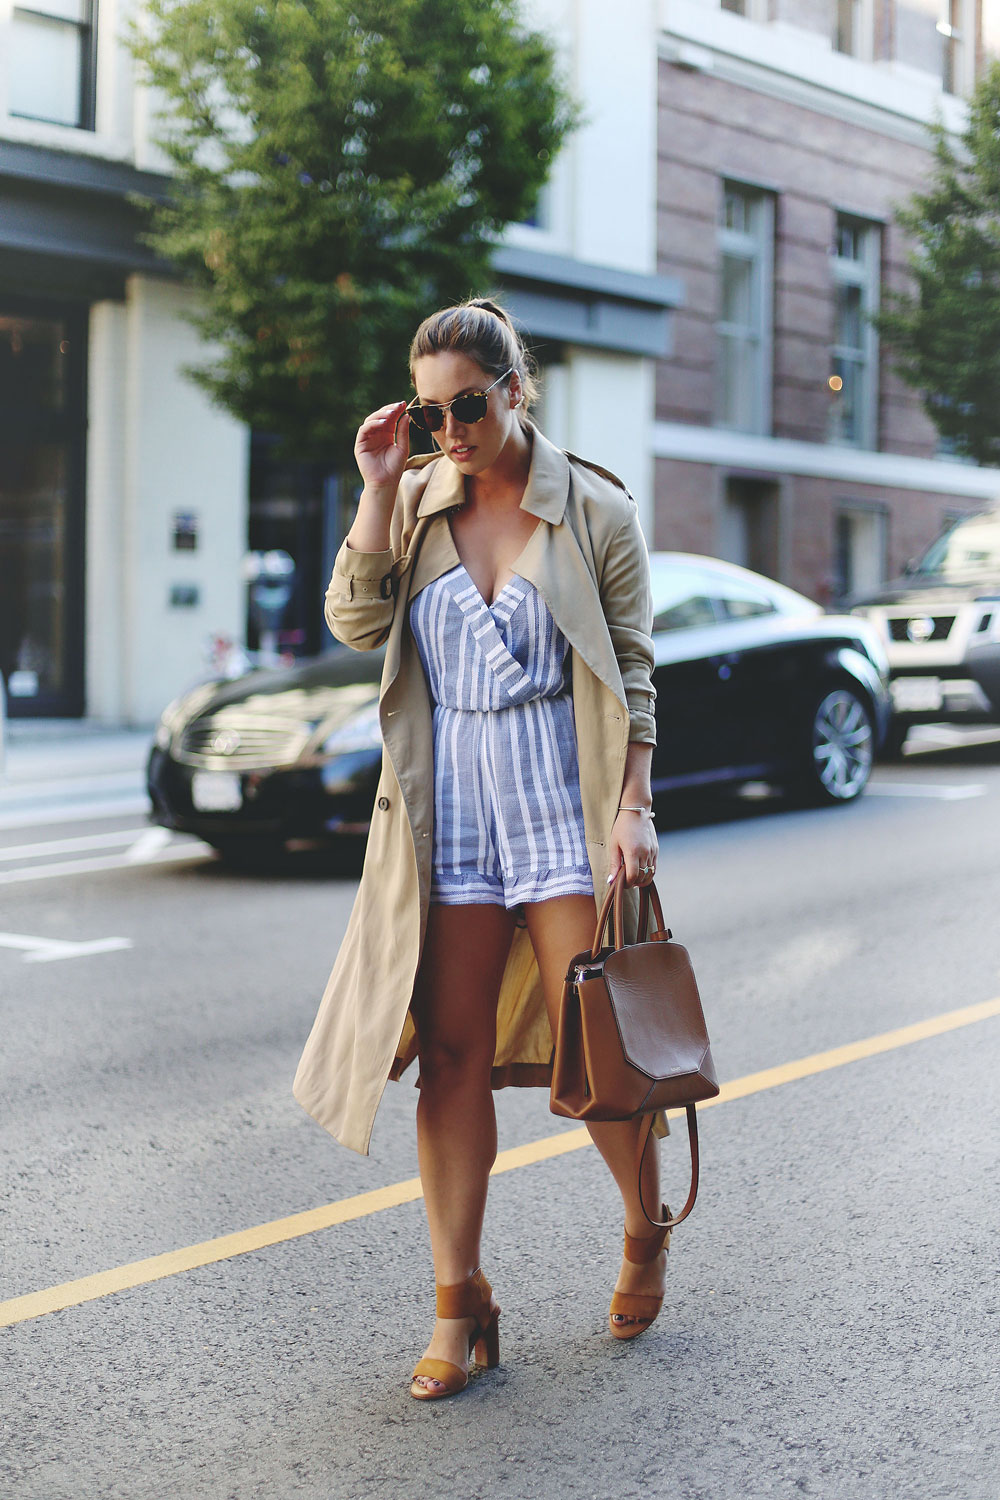 To Vogue or Bust shares fall transition style tips in a REVOLVE TULAROSA romper, Aritzia Wilfred trench coat, Aritzia Auxiliary Bega bag, Joie heels, Leah Alexandra jewelry and Ted Baker sunglasses